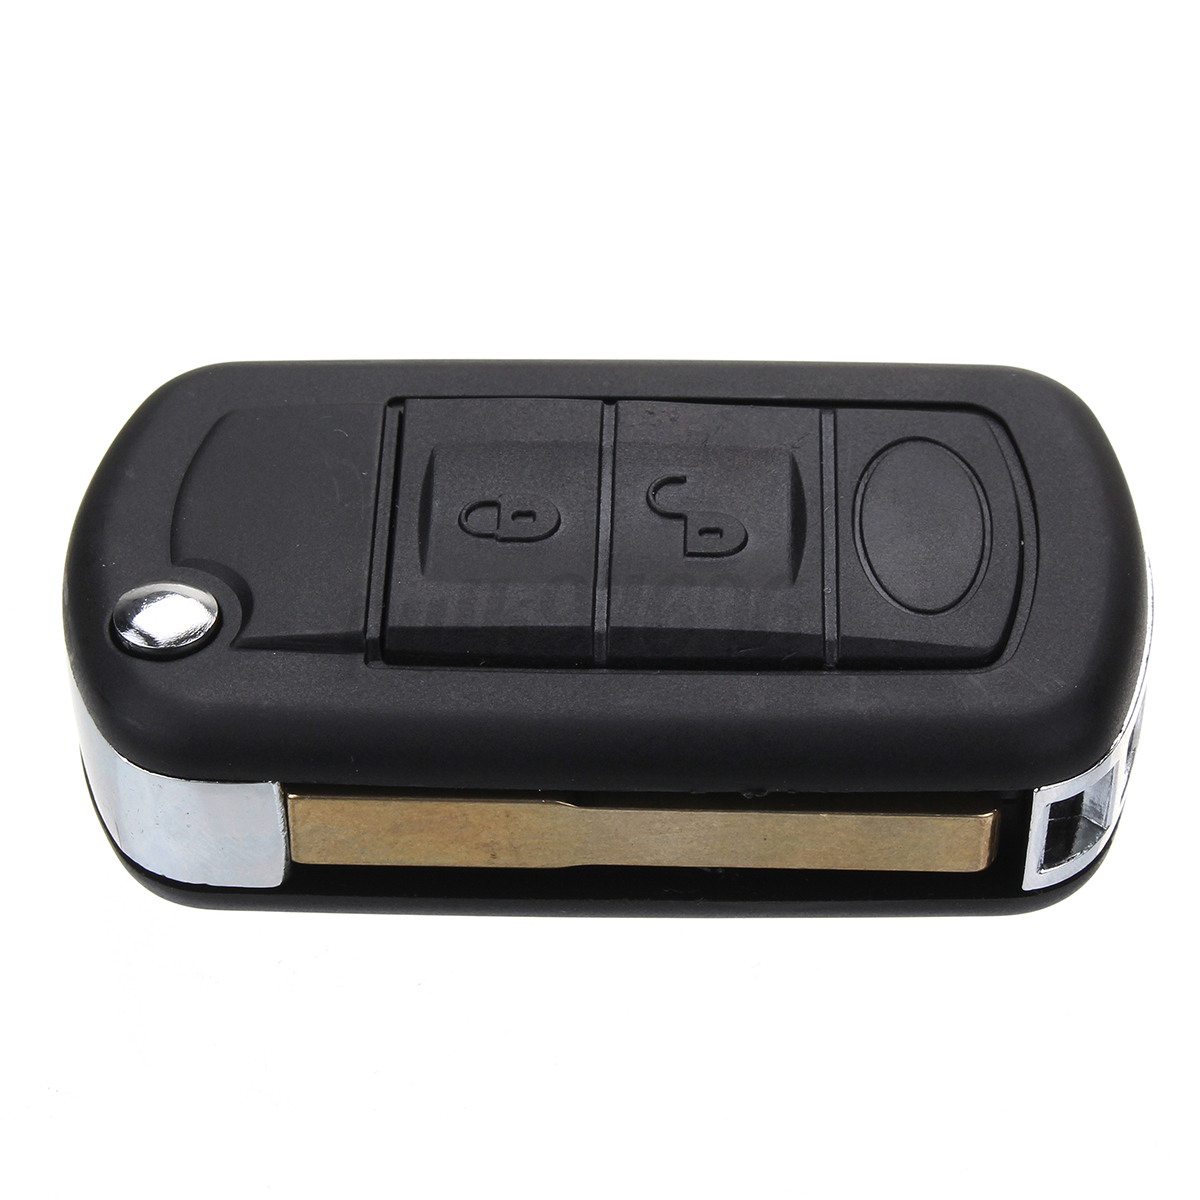 Fob Remote Key Case Shell 3 Buttons With VL2330 Battery